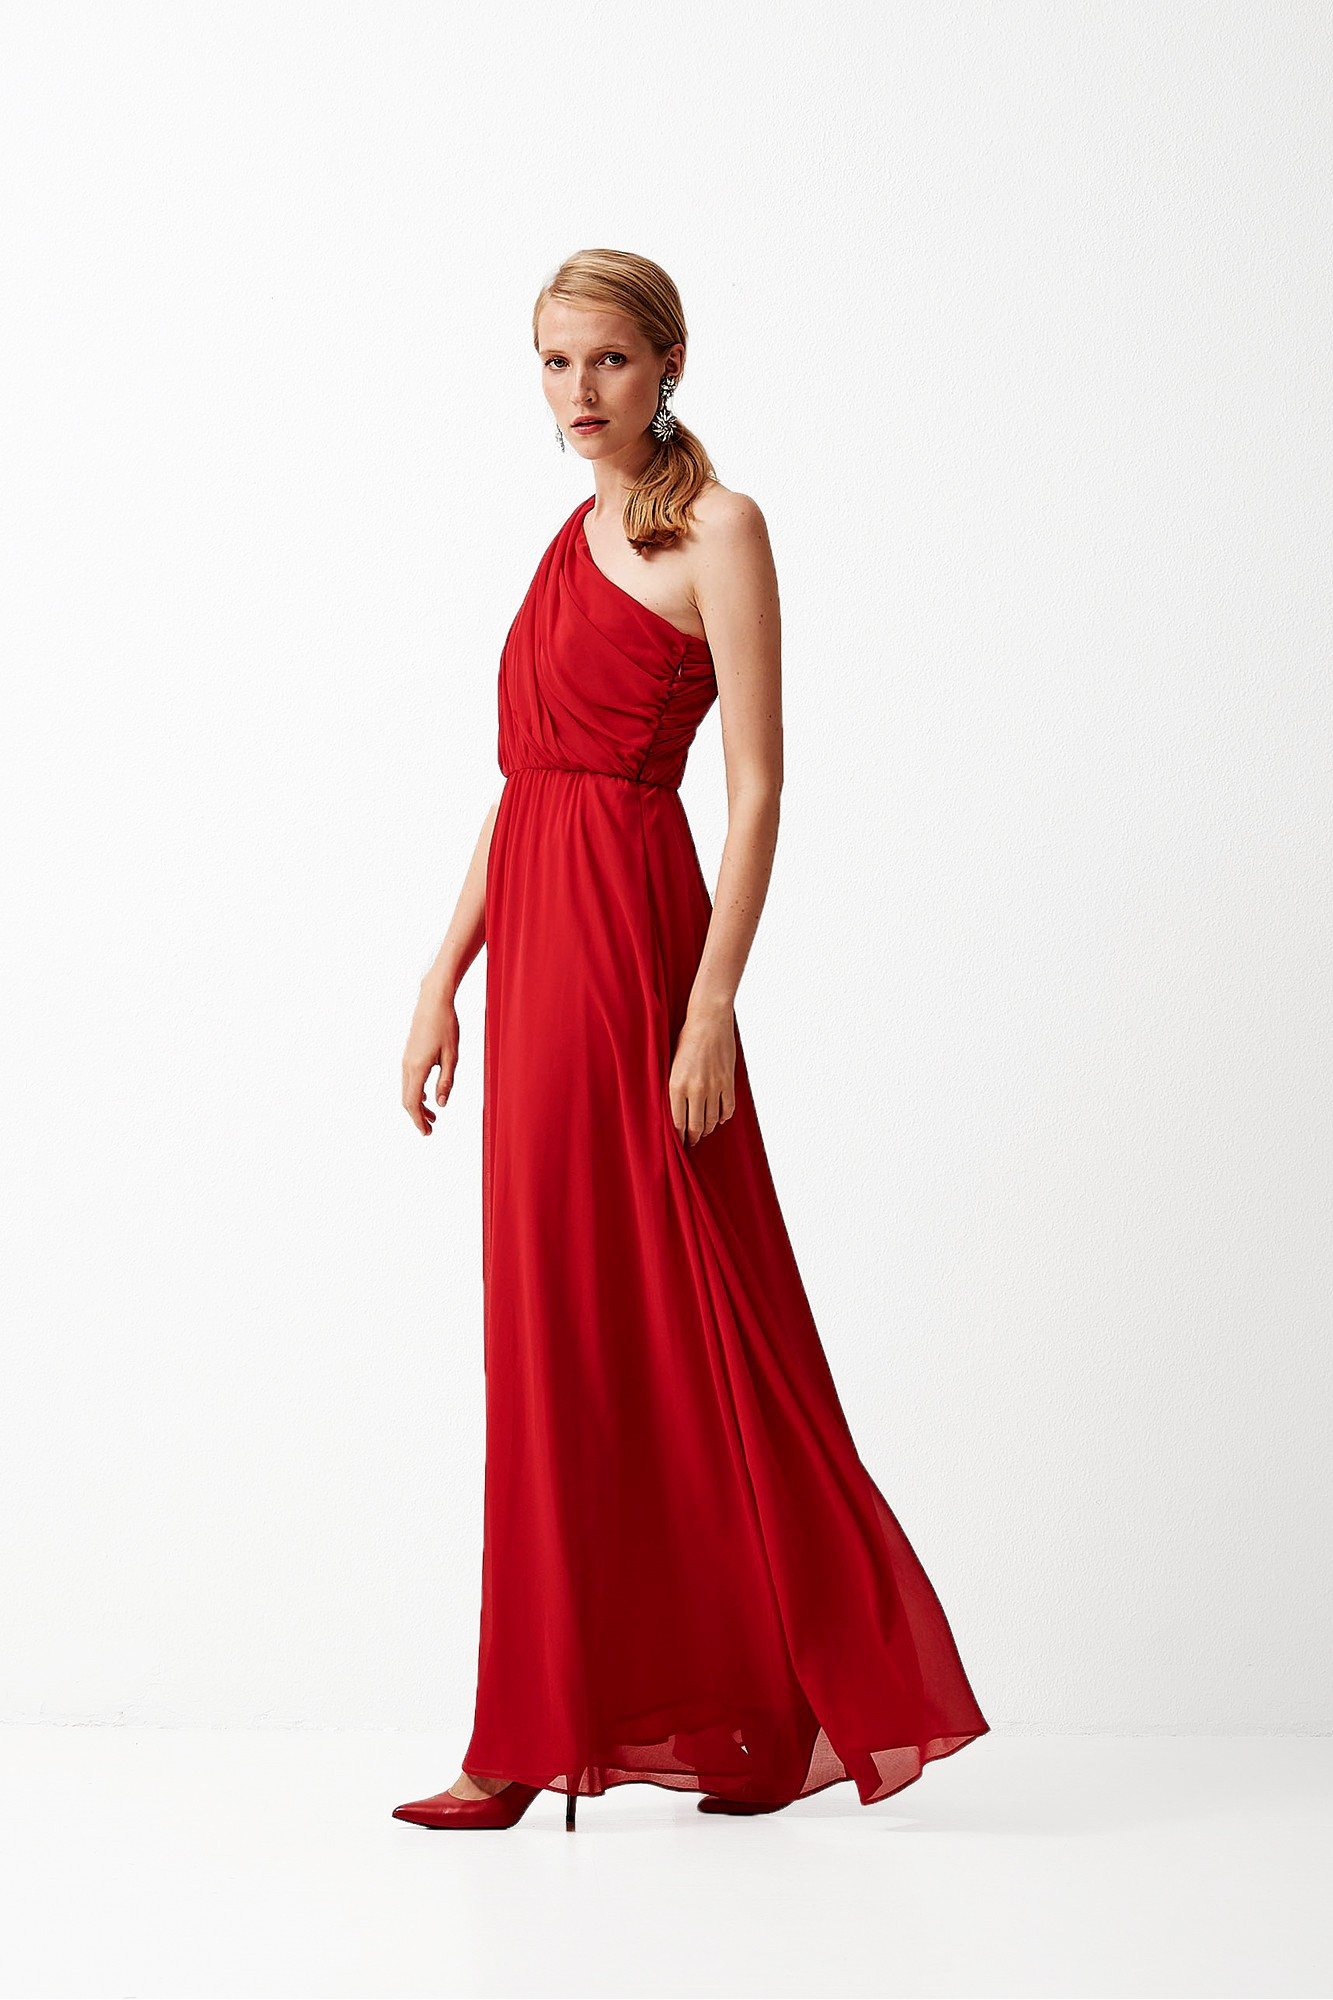 HERMES RED DRESS